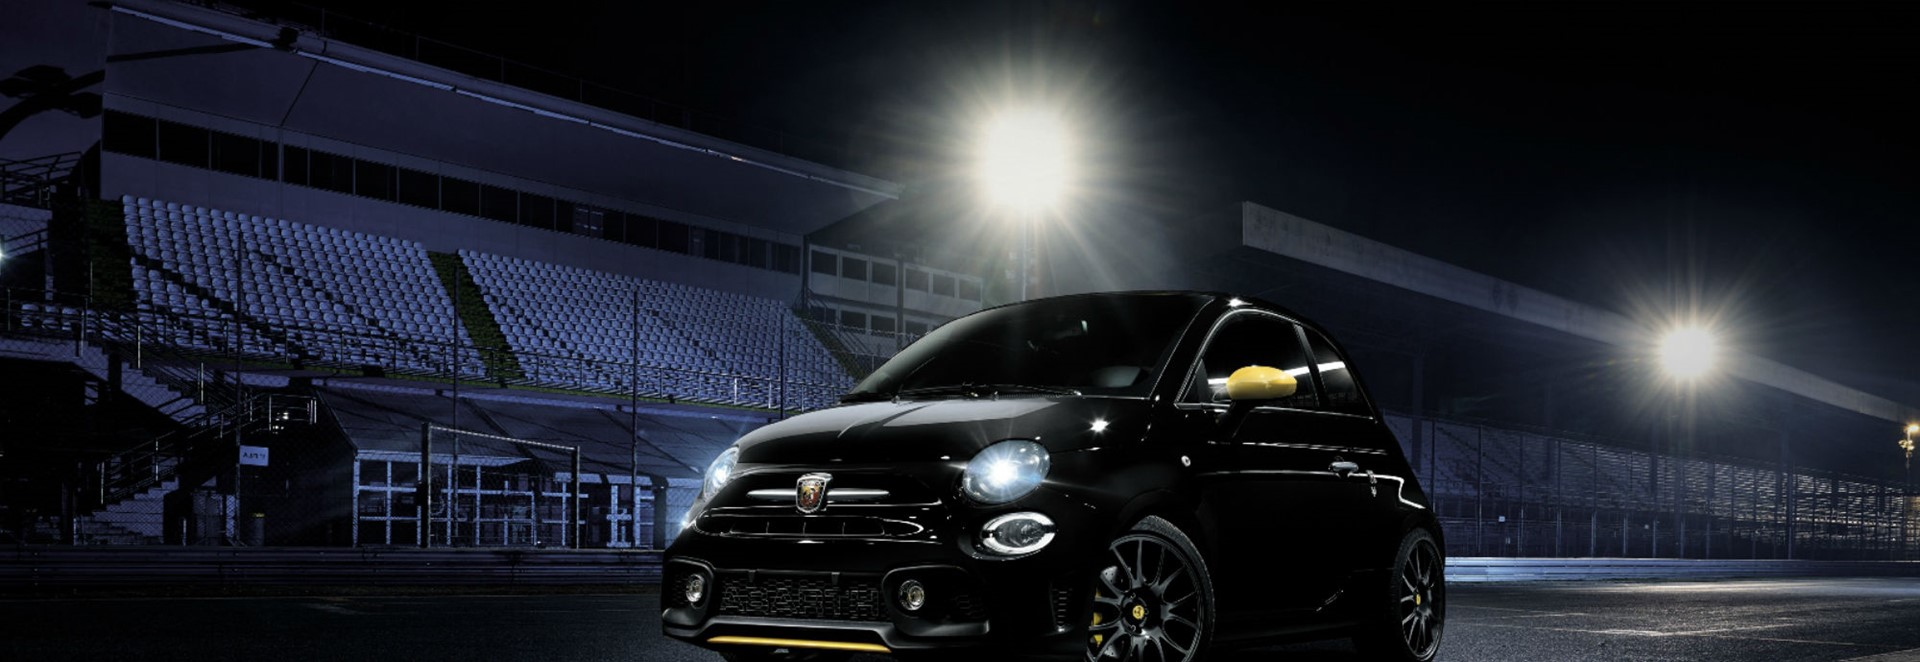 All-new Abarth 595 Trofeo on sale now, priced from £17,290